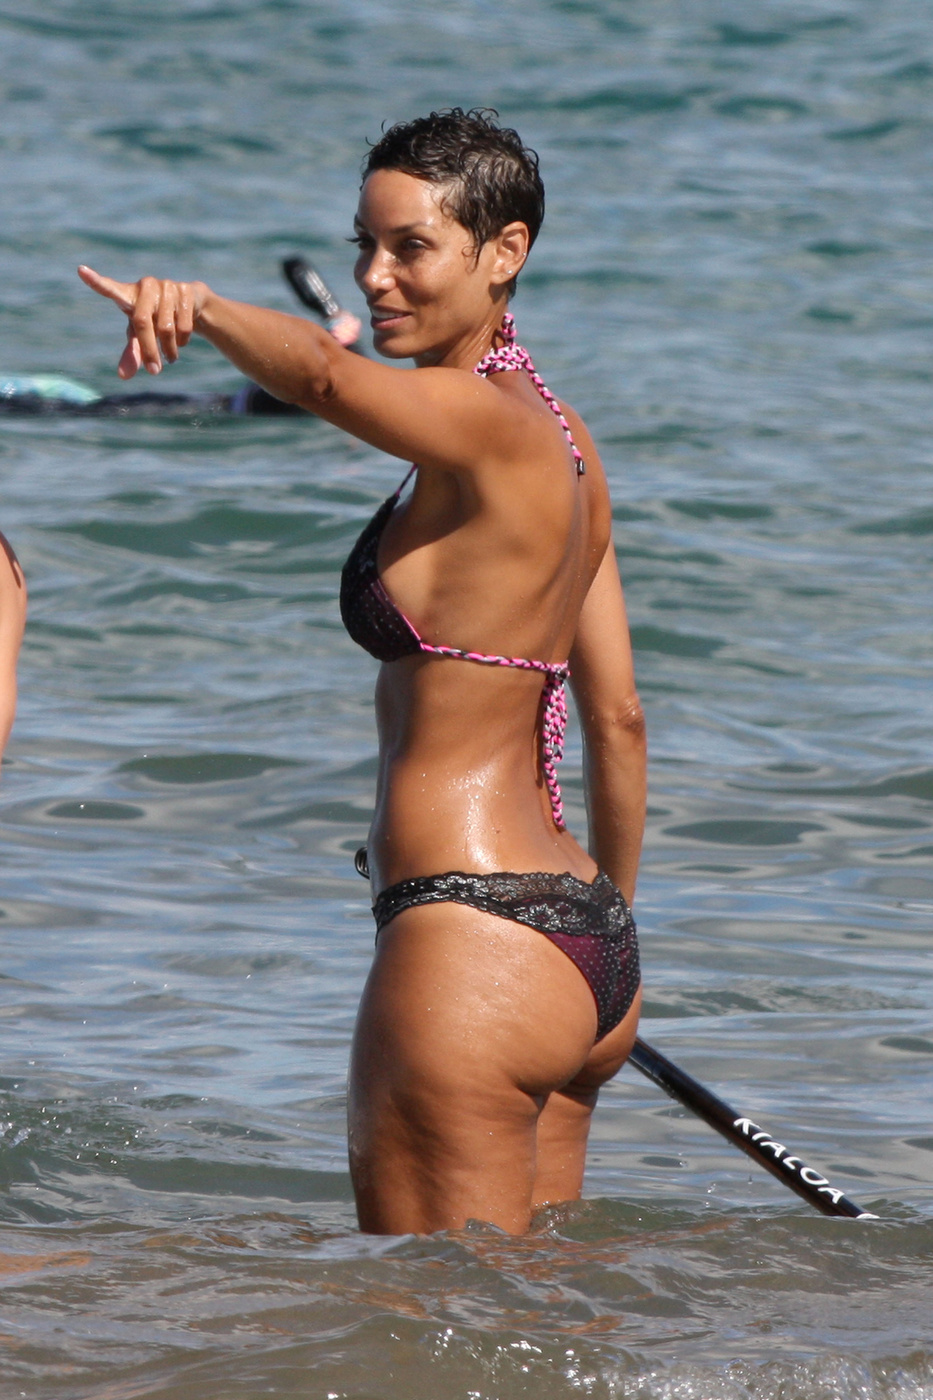 Nicole Murphy In A Bikini Paddleboarding At The Beach 04